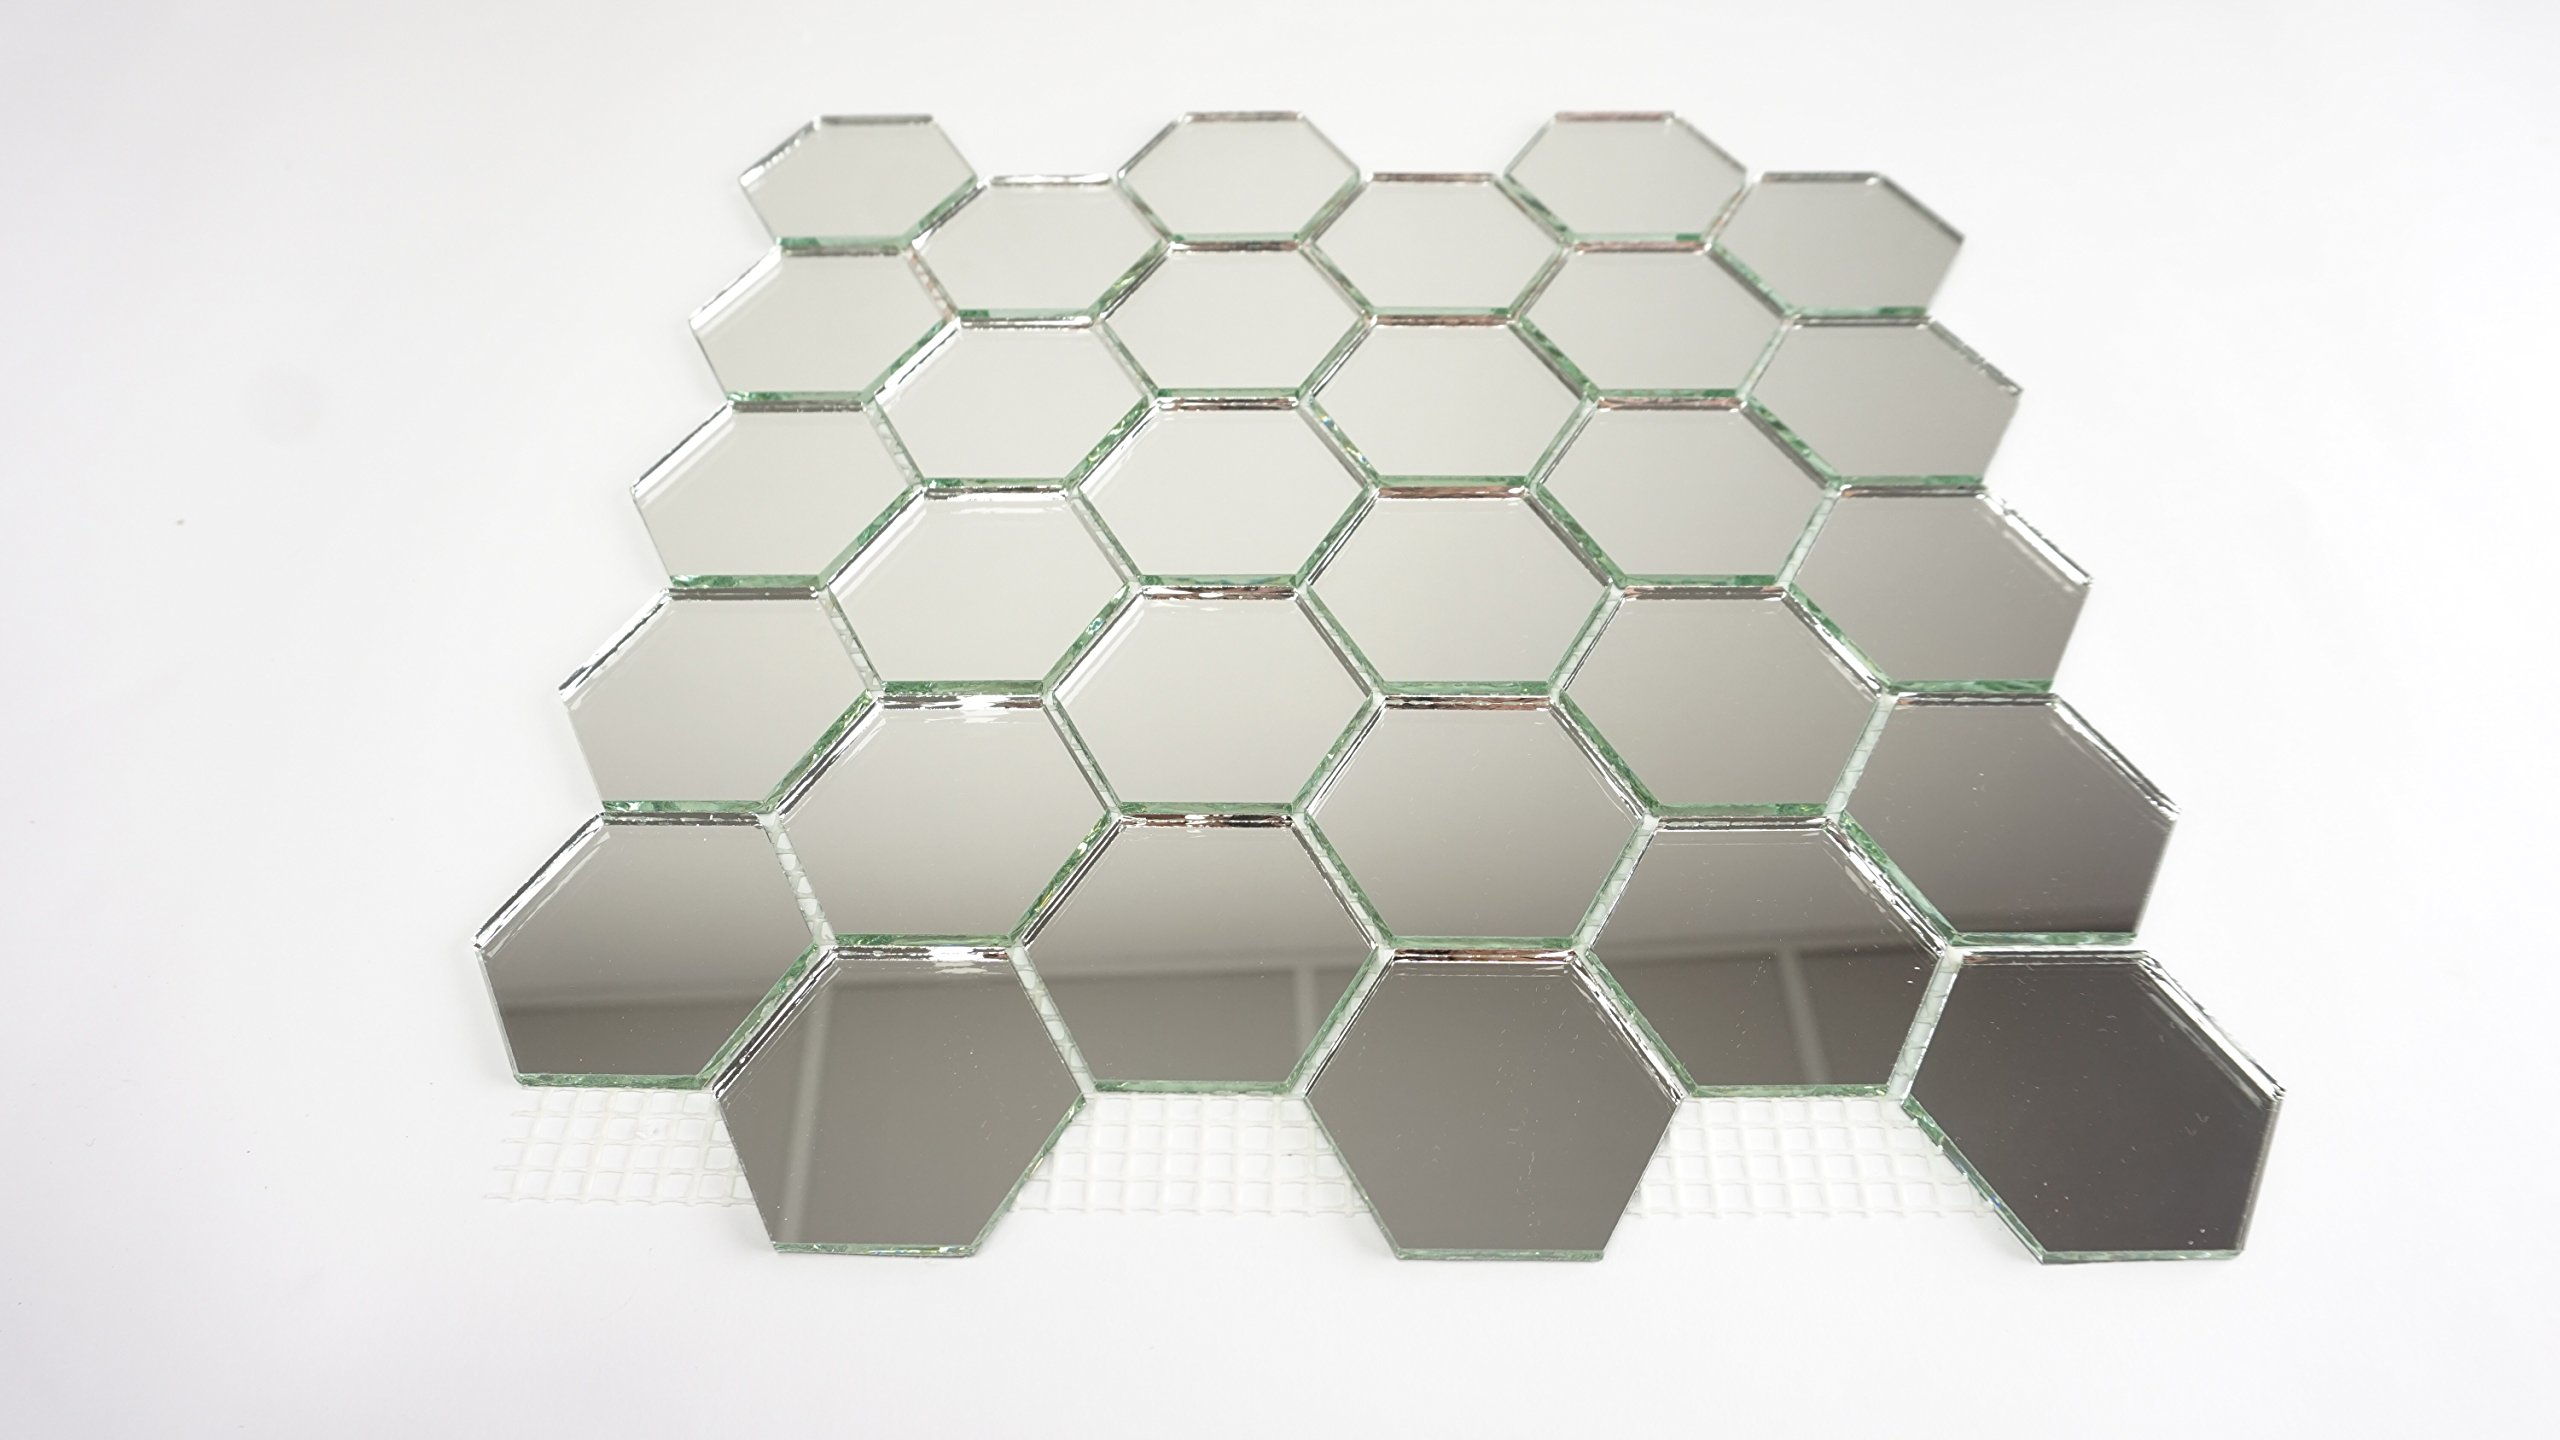 Aleksander Hreben ,Backsplash, Hexagonal Mirror Mosaic Tiles on mesh 12''x12'' - 9 Sheets